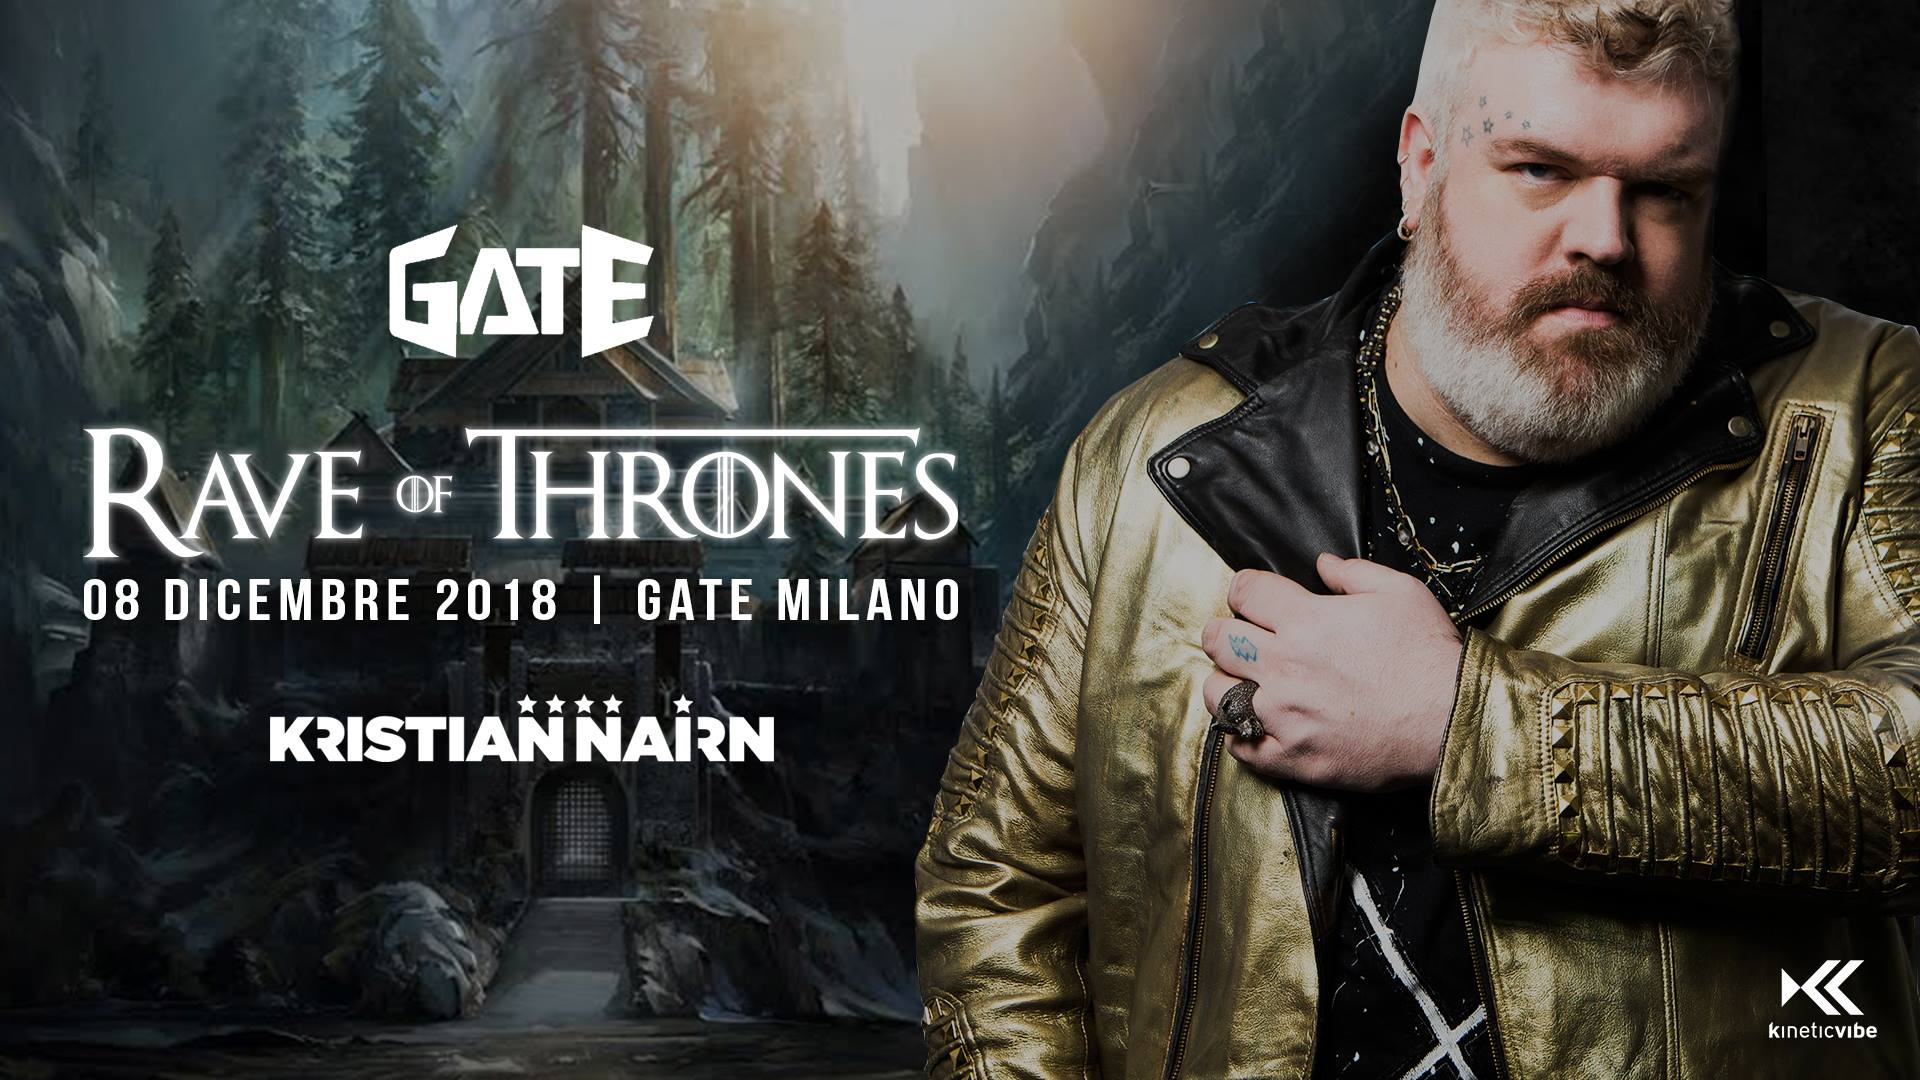 Foto: Rave of Thrones Gate Milano